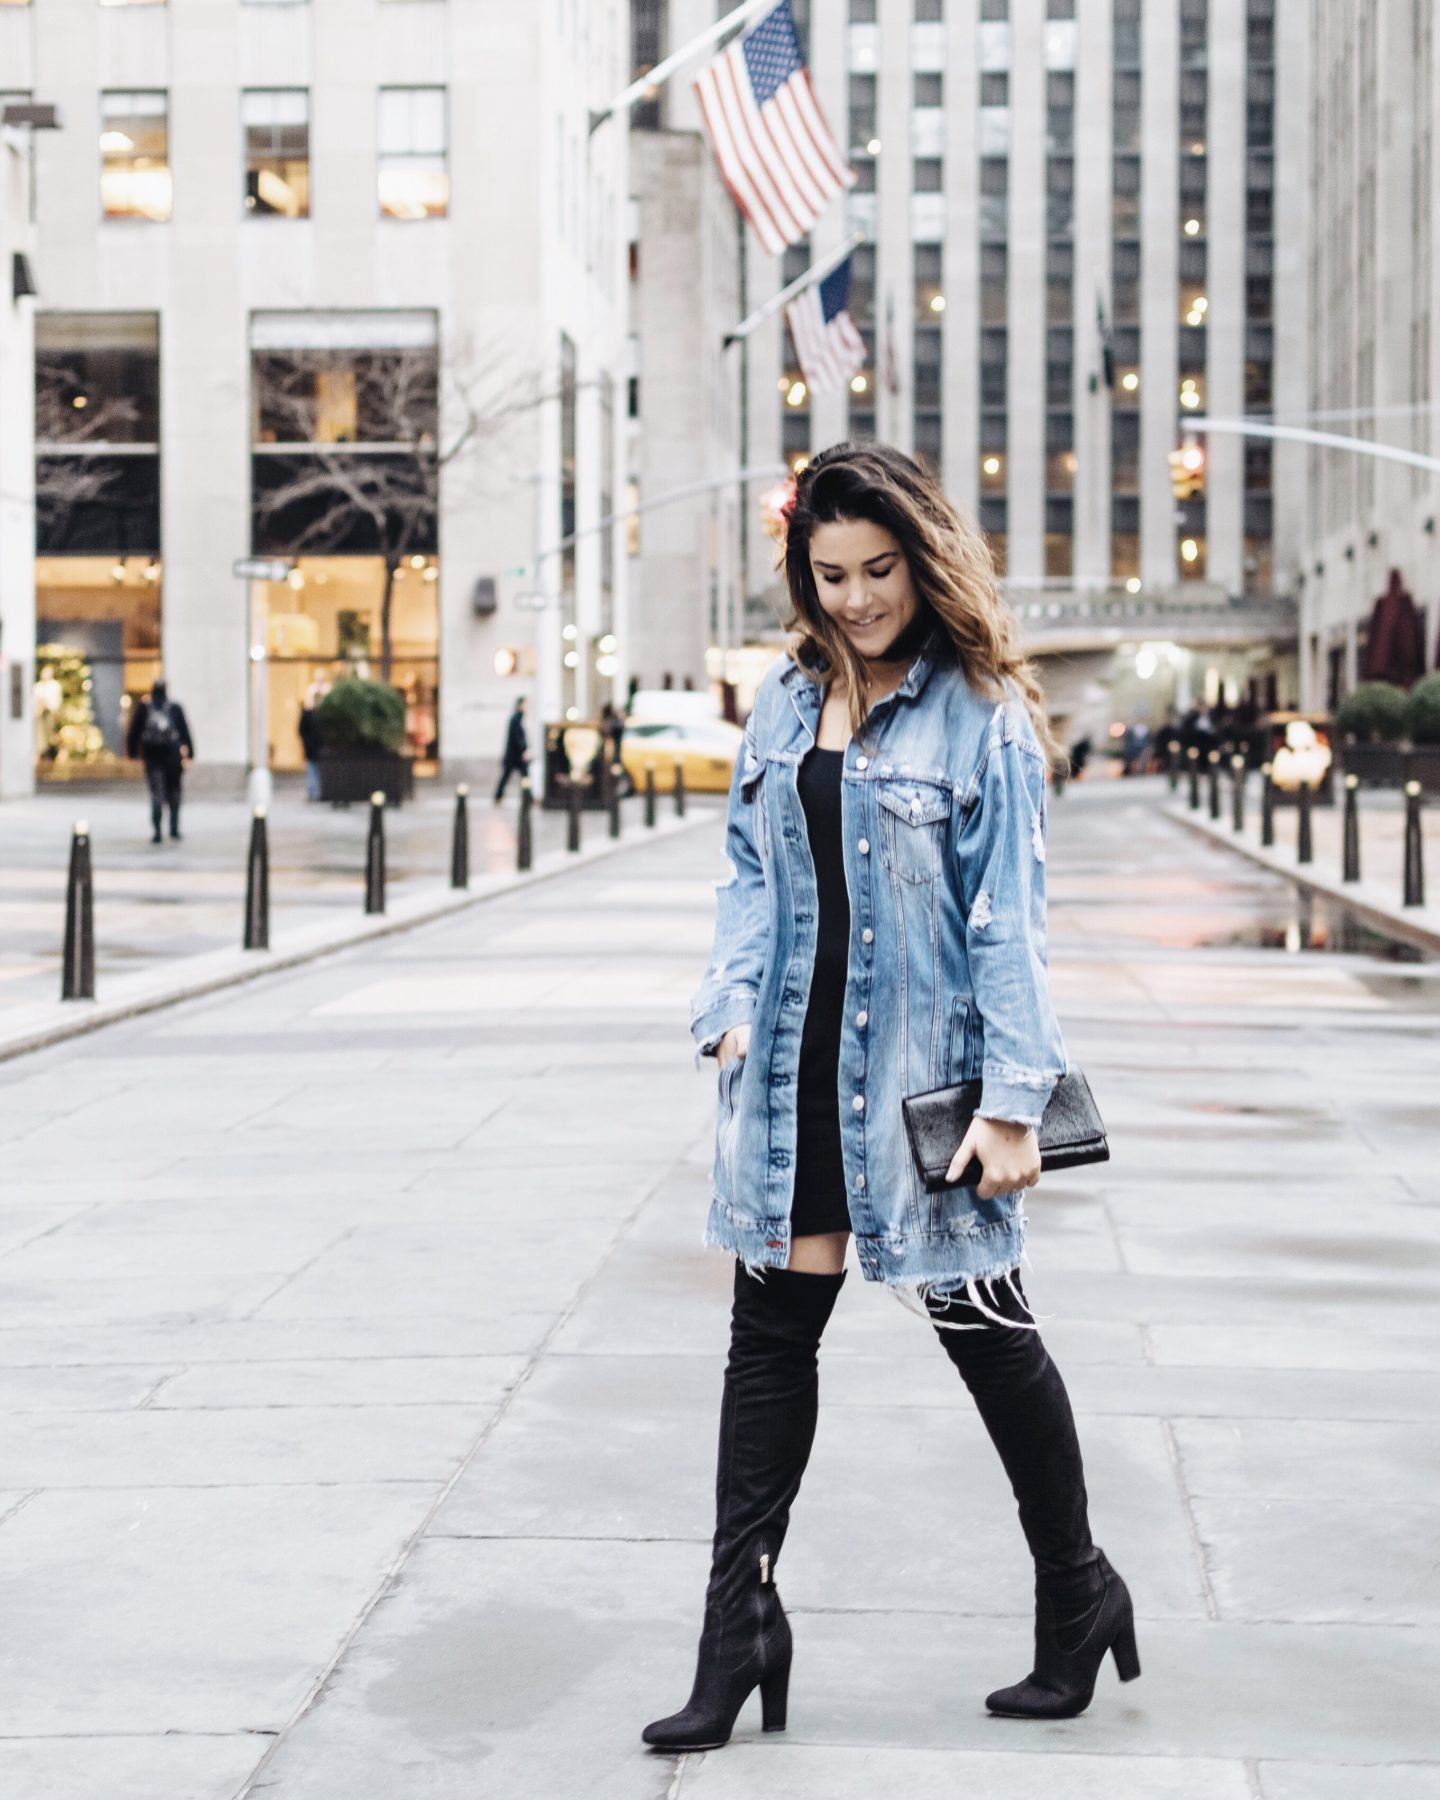 Get My Look: Long Denim Coat & OTK Boots